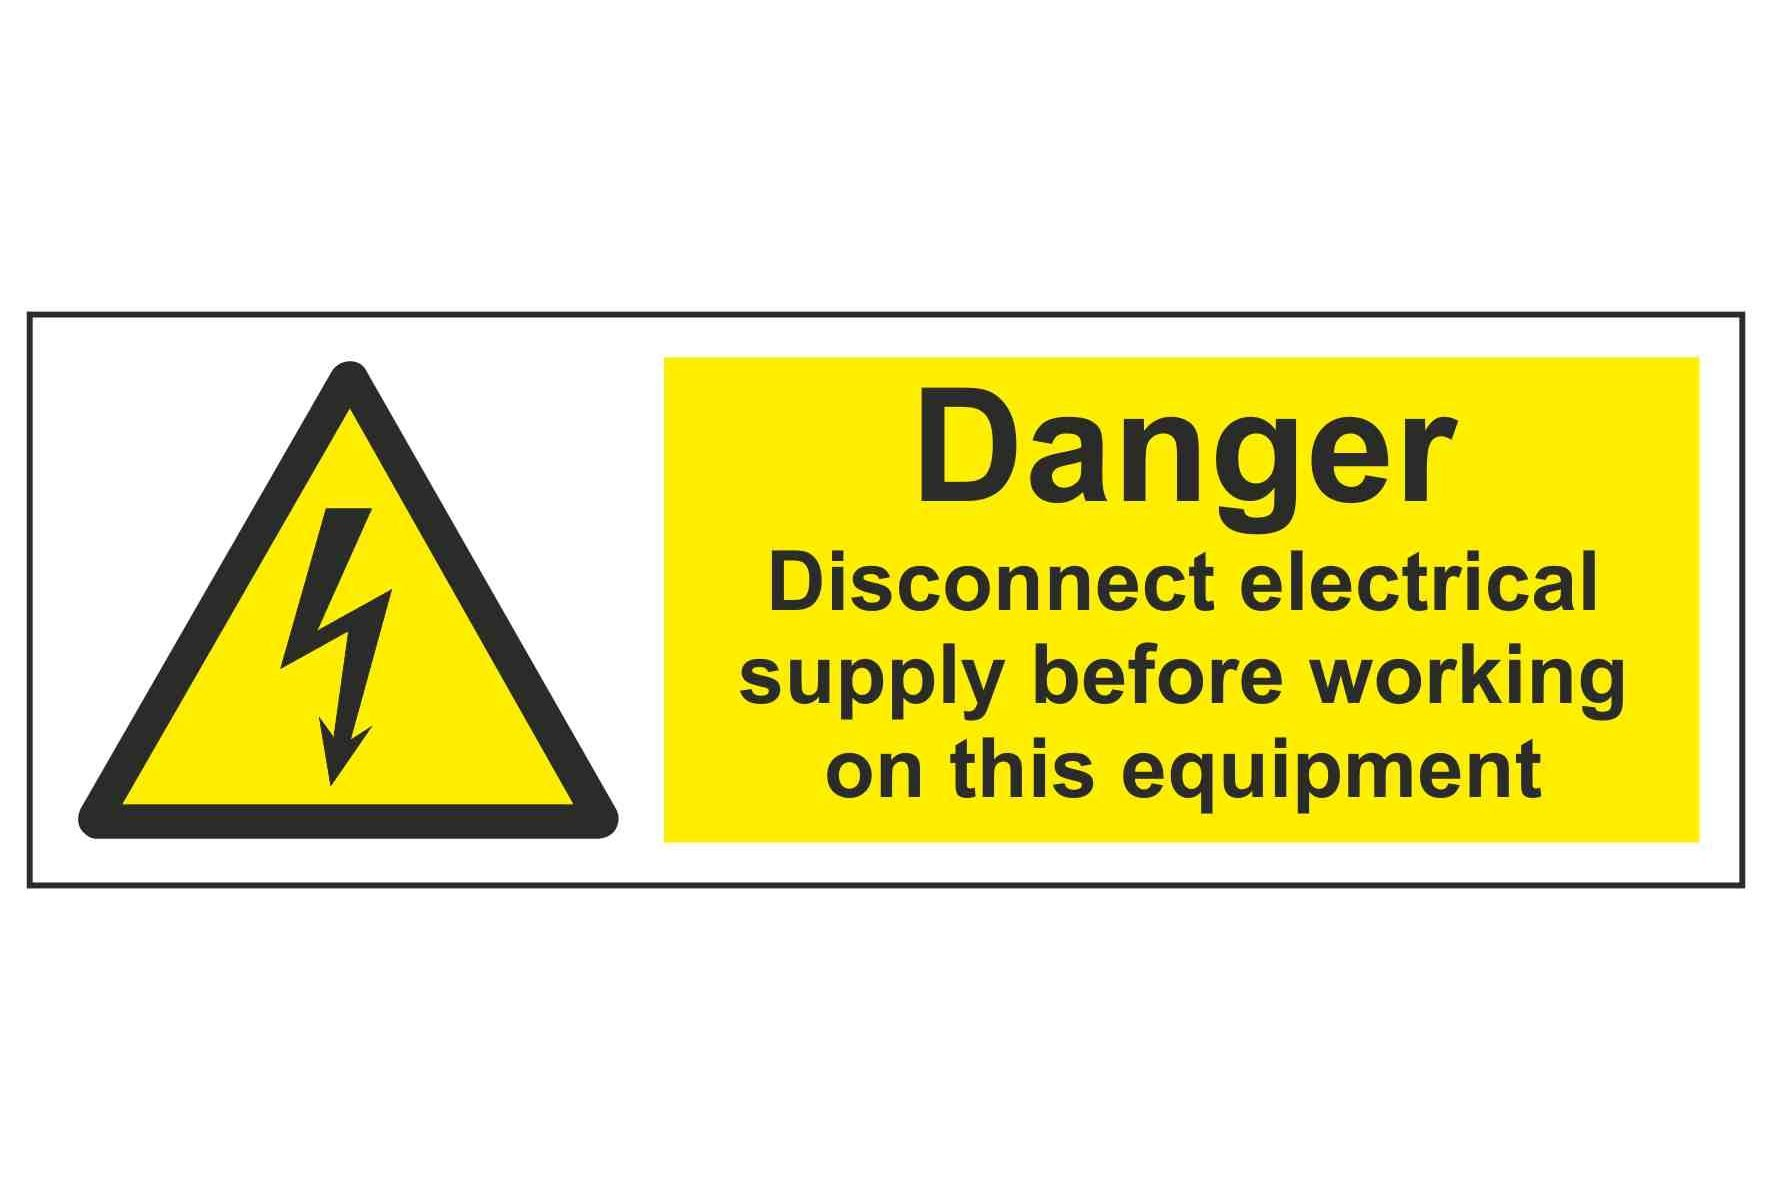 Danger Disconnect electrical supply before working on this equipment